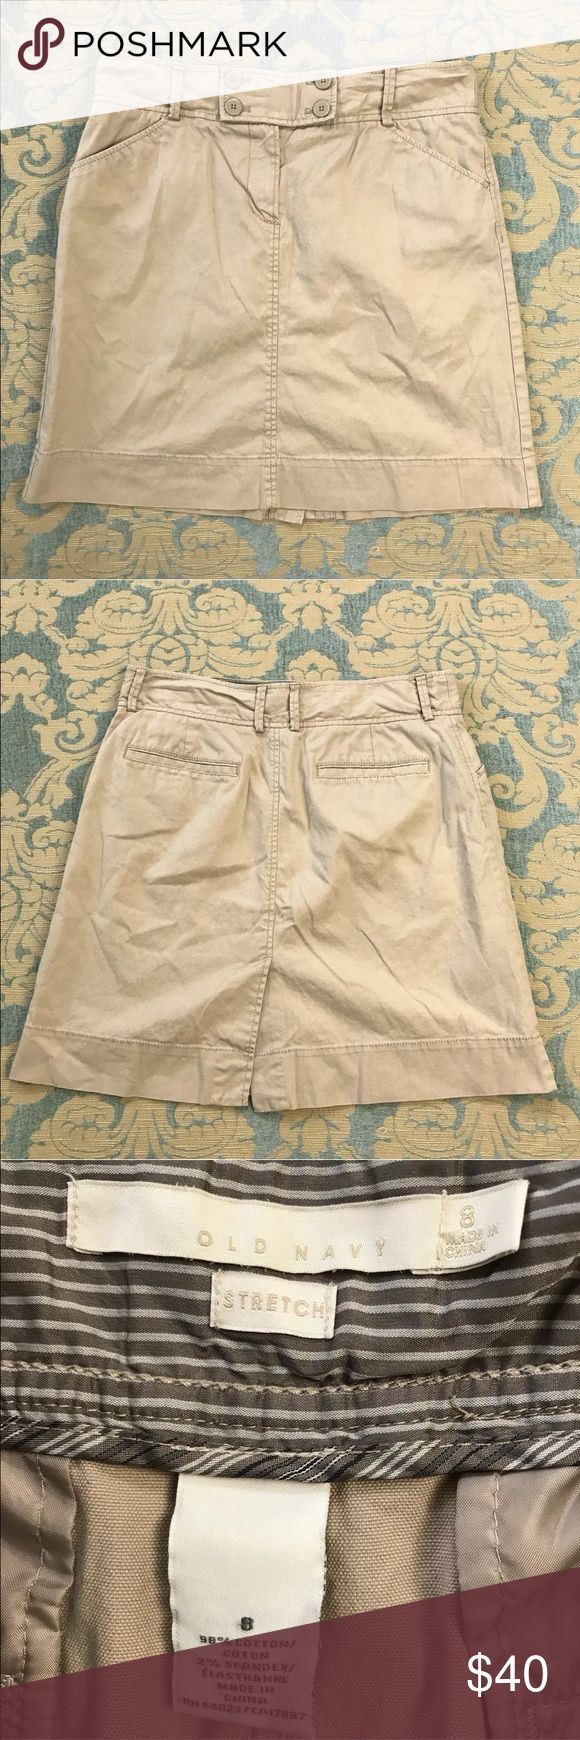 """Old Navy Khaki Straight Skirt NWOT 19"""" Long Old Navy Khaki Straight Skirt NWOT  Women's Size: 8  Material: 98% Cotton 2% Spandex  No flaws.  Measurements lying flat: Waist 15"""", Hips 21"""", Length 19"""".  Please, review pictures. You will get the item shown. Smoke & pet free home. Old Navy Skirts Mini"""